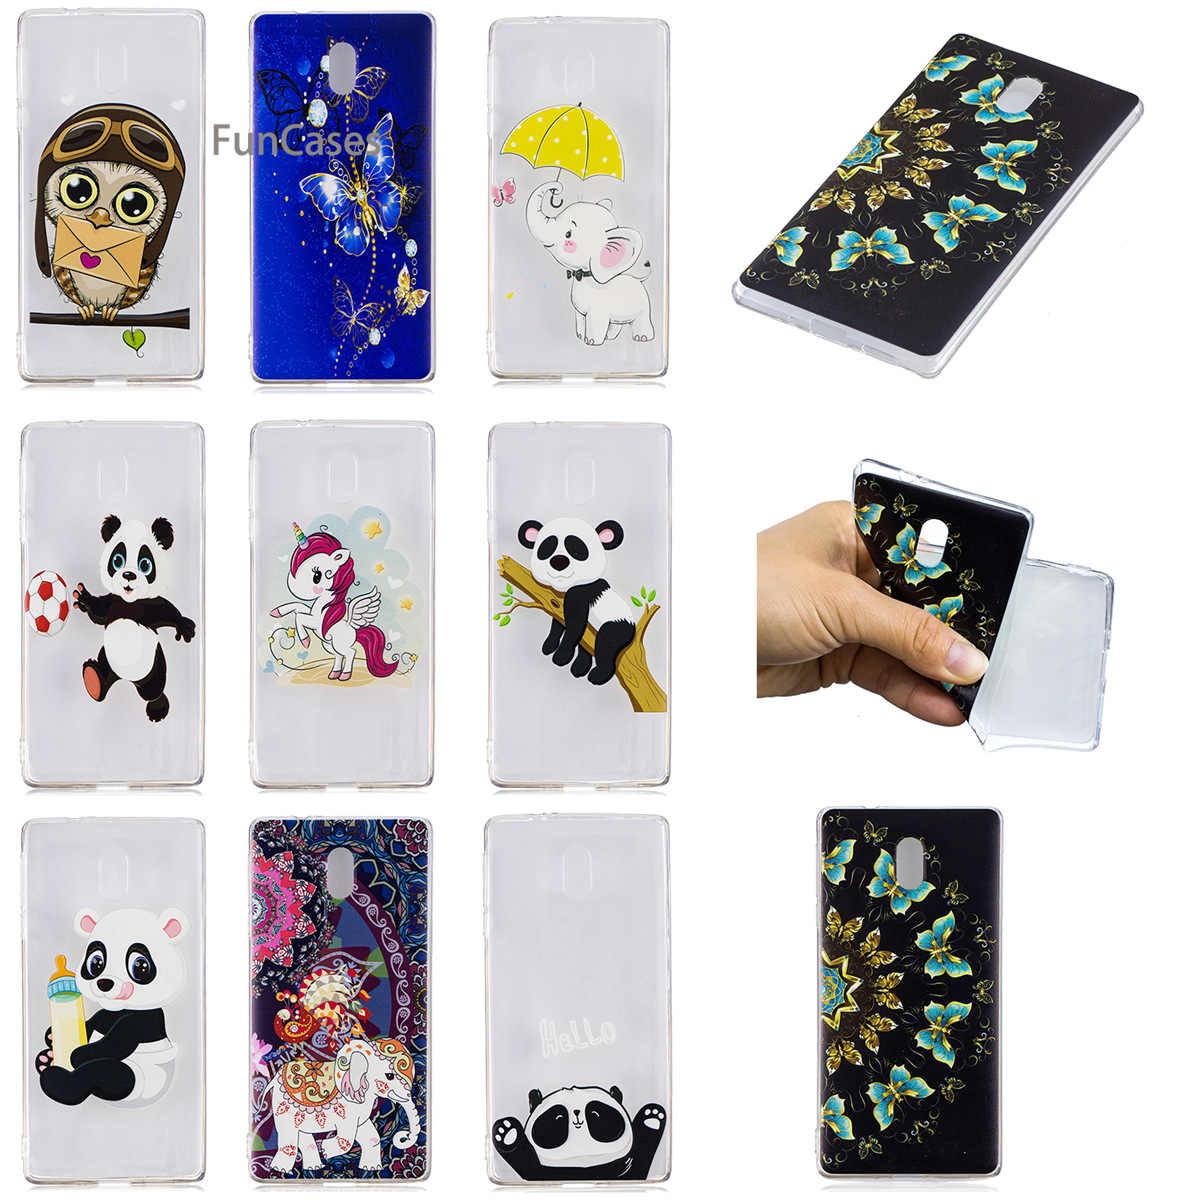 finest selection 08745 37f99 Cute Unicorn Phone Case sFor Cellular Nokia 3 Soft Silicone Back Cover  Carcasa Matte Bumper Case For Nokia 3 Phomne Hoesjes Tok